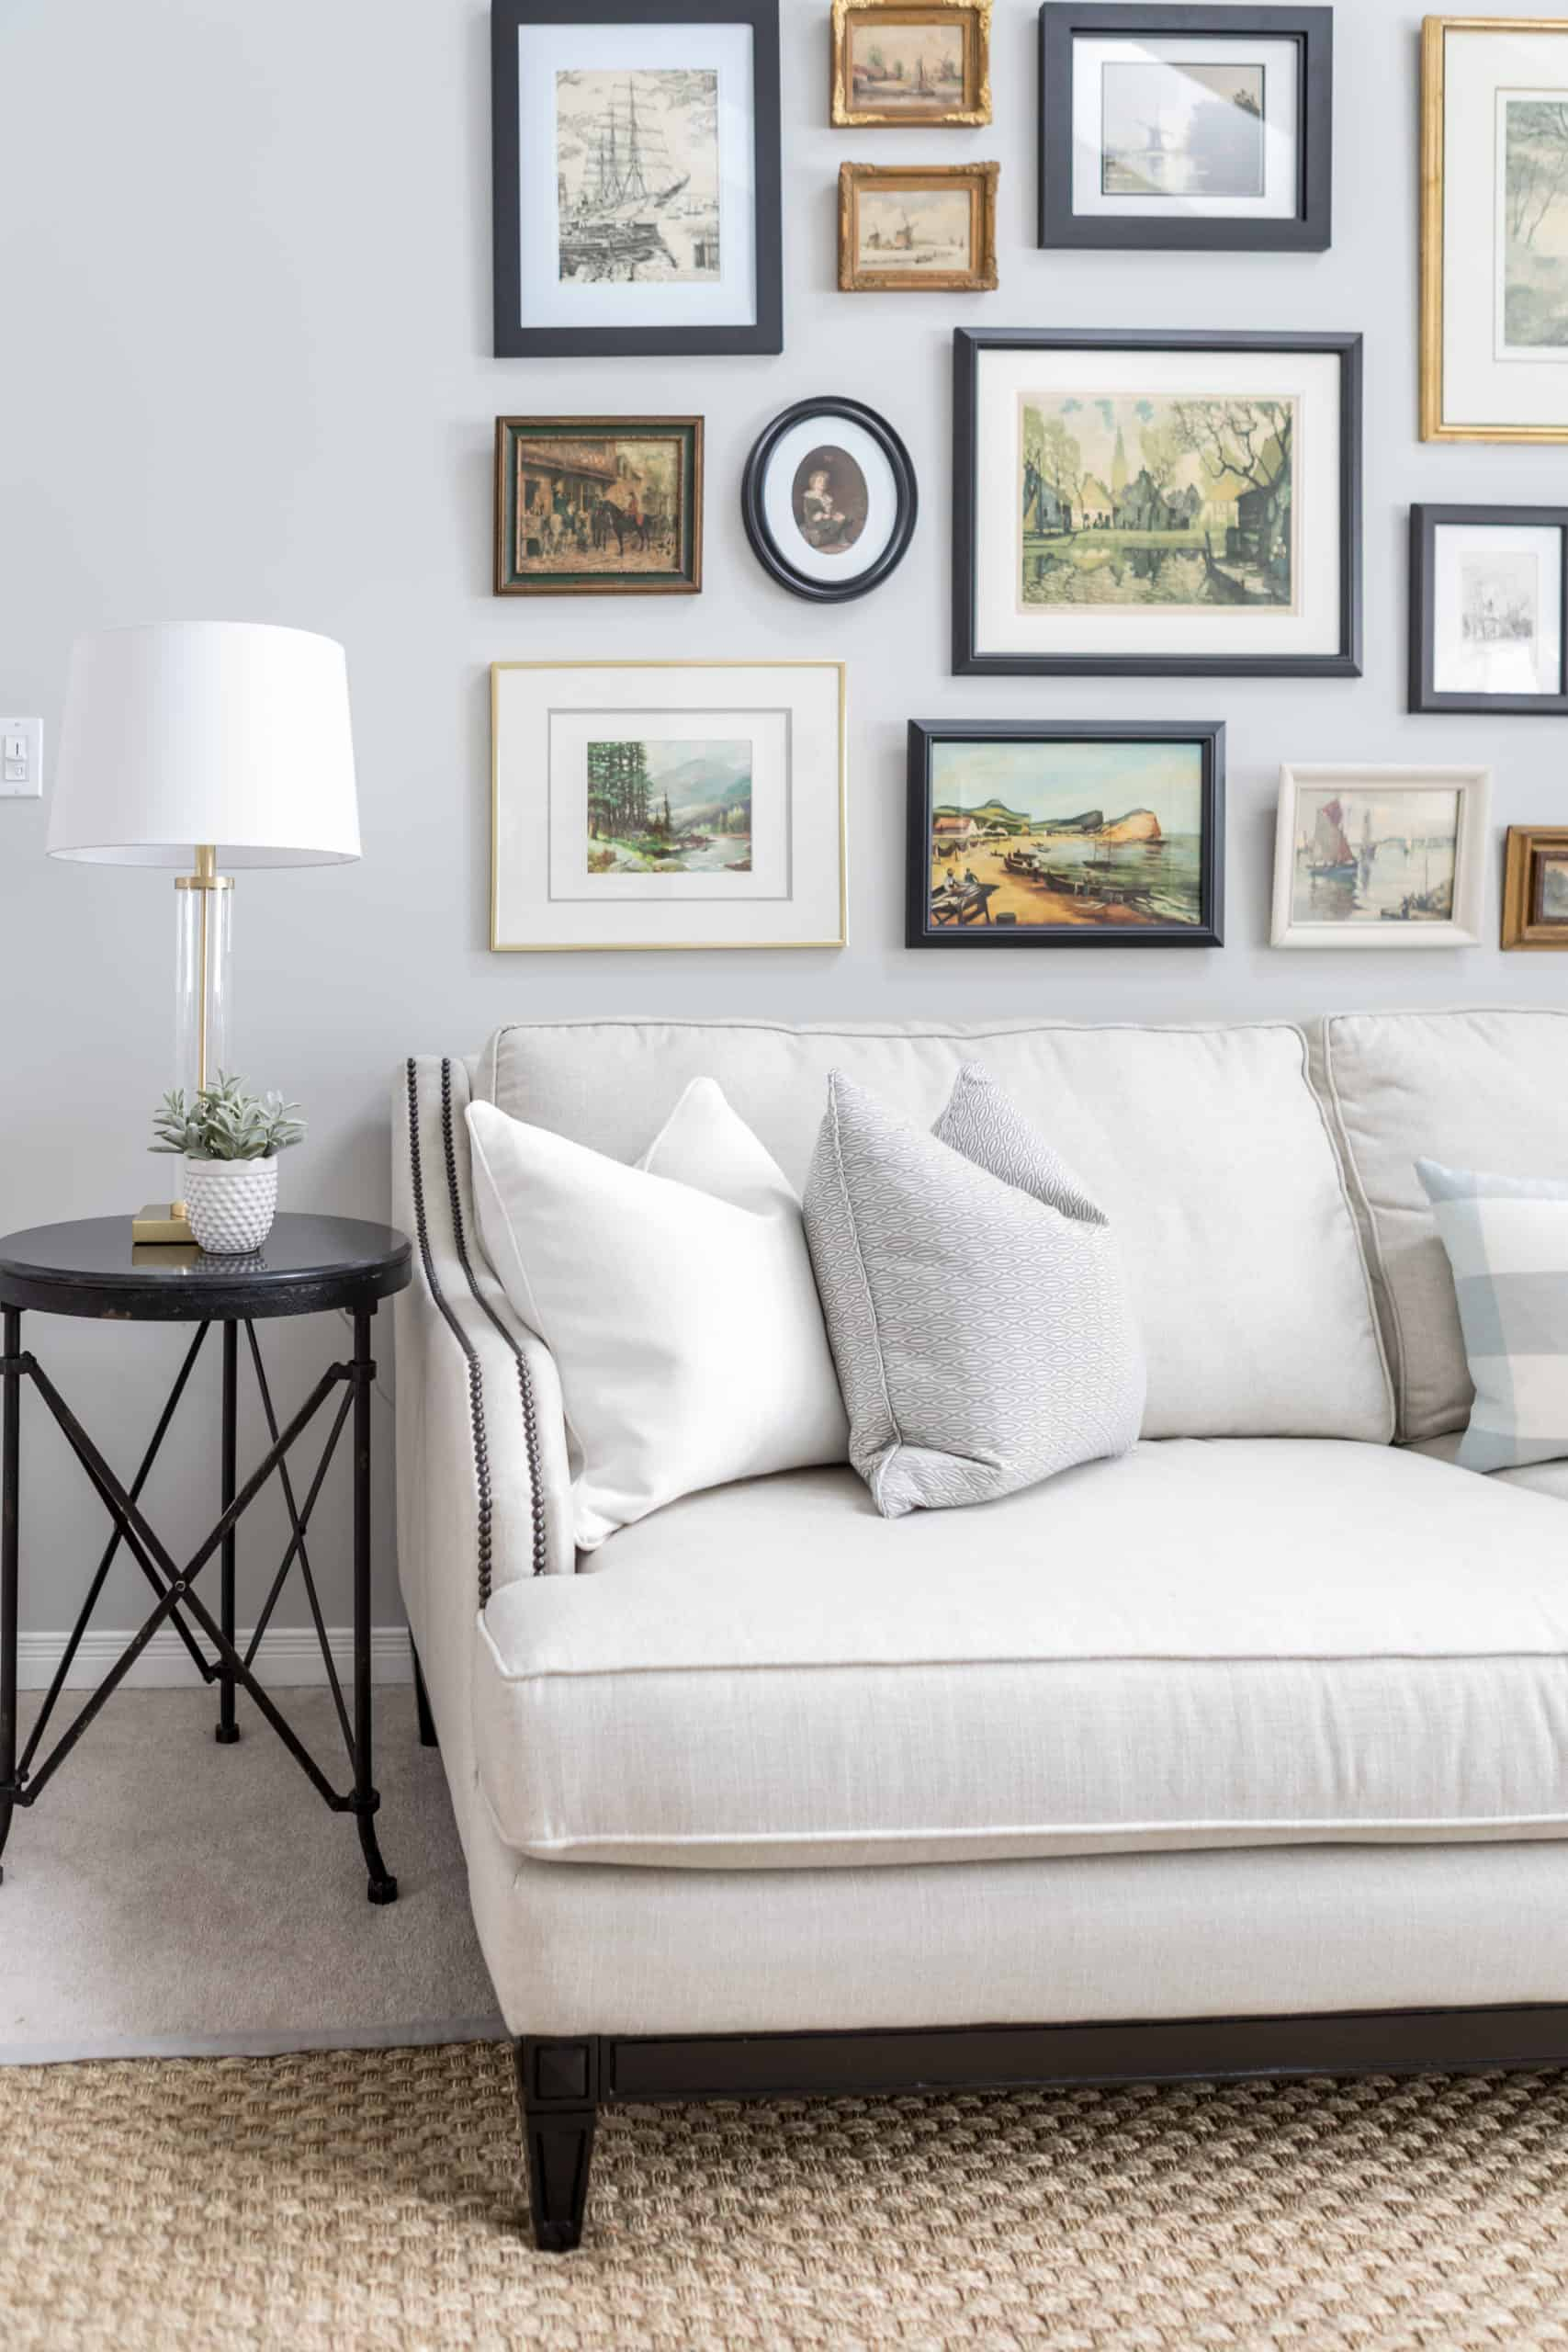 Many pictures above a white couch